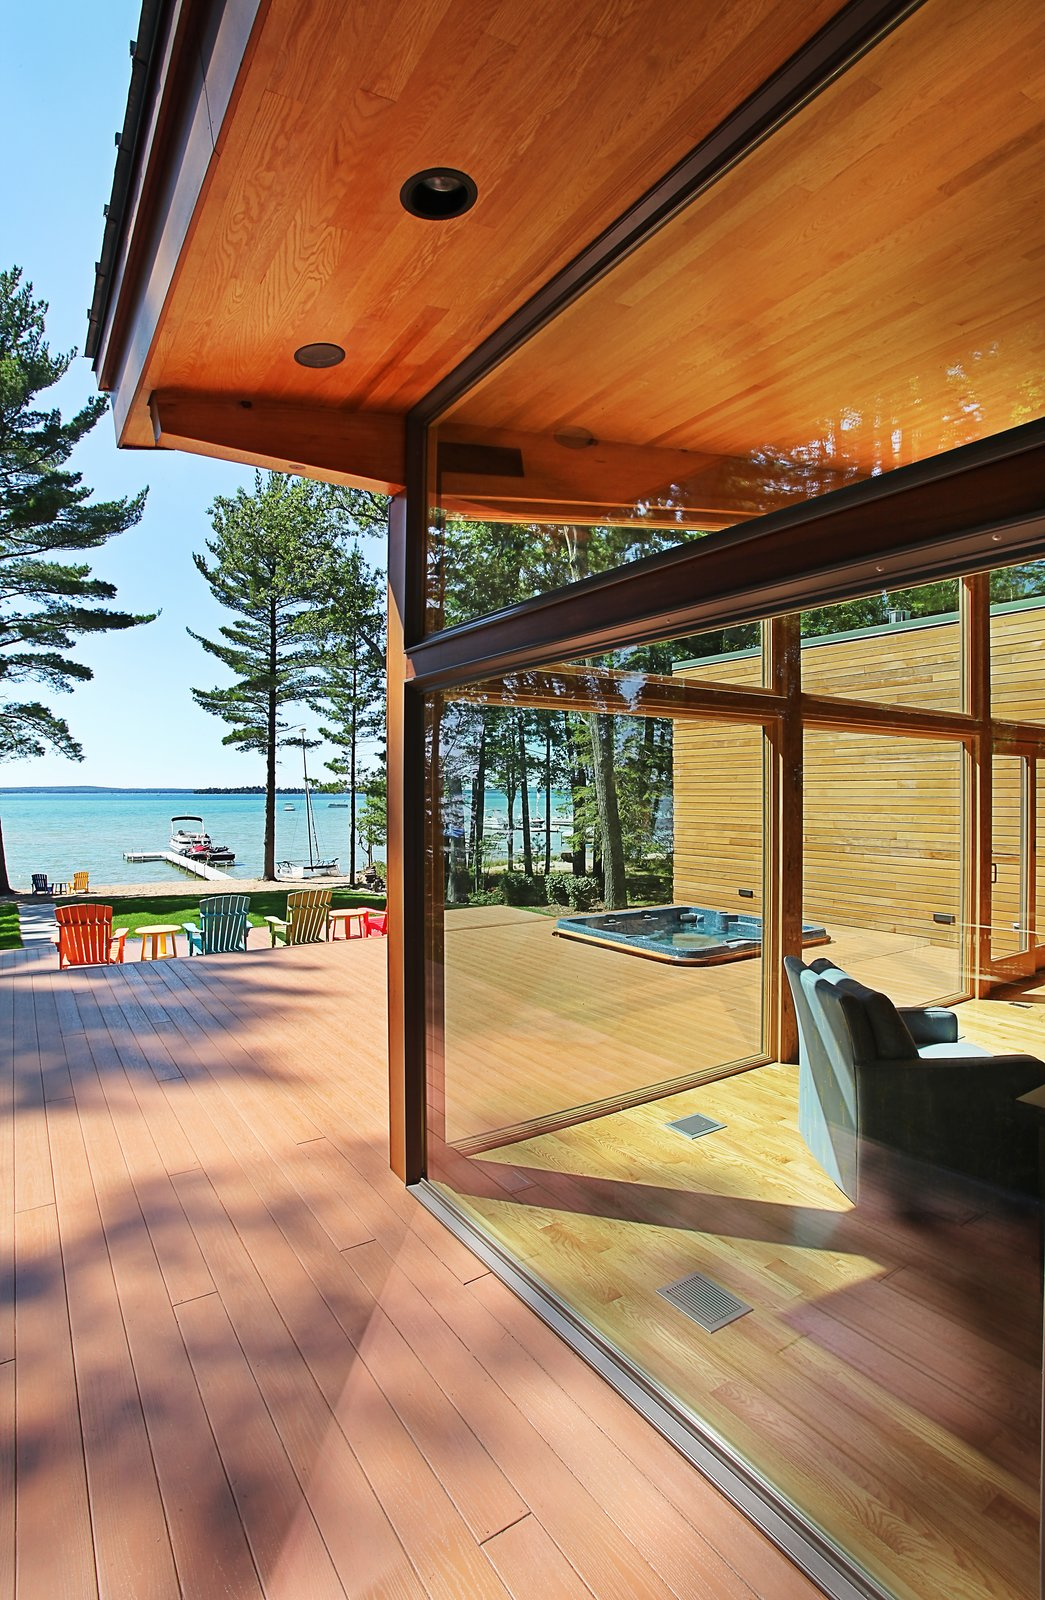 Southwest corner showing relationship between wrap around deck and interior  Higgins Lake House by Jeff Jordan Architects